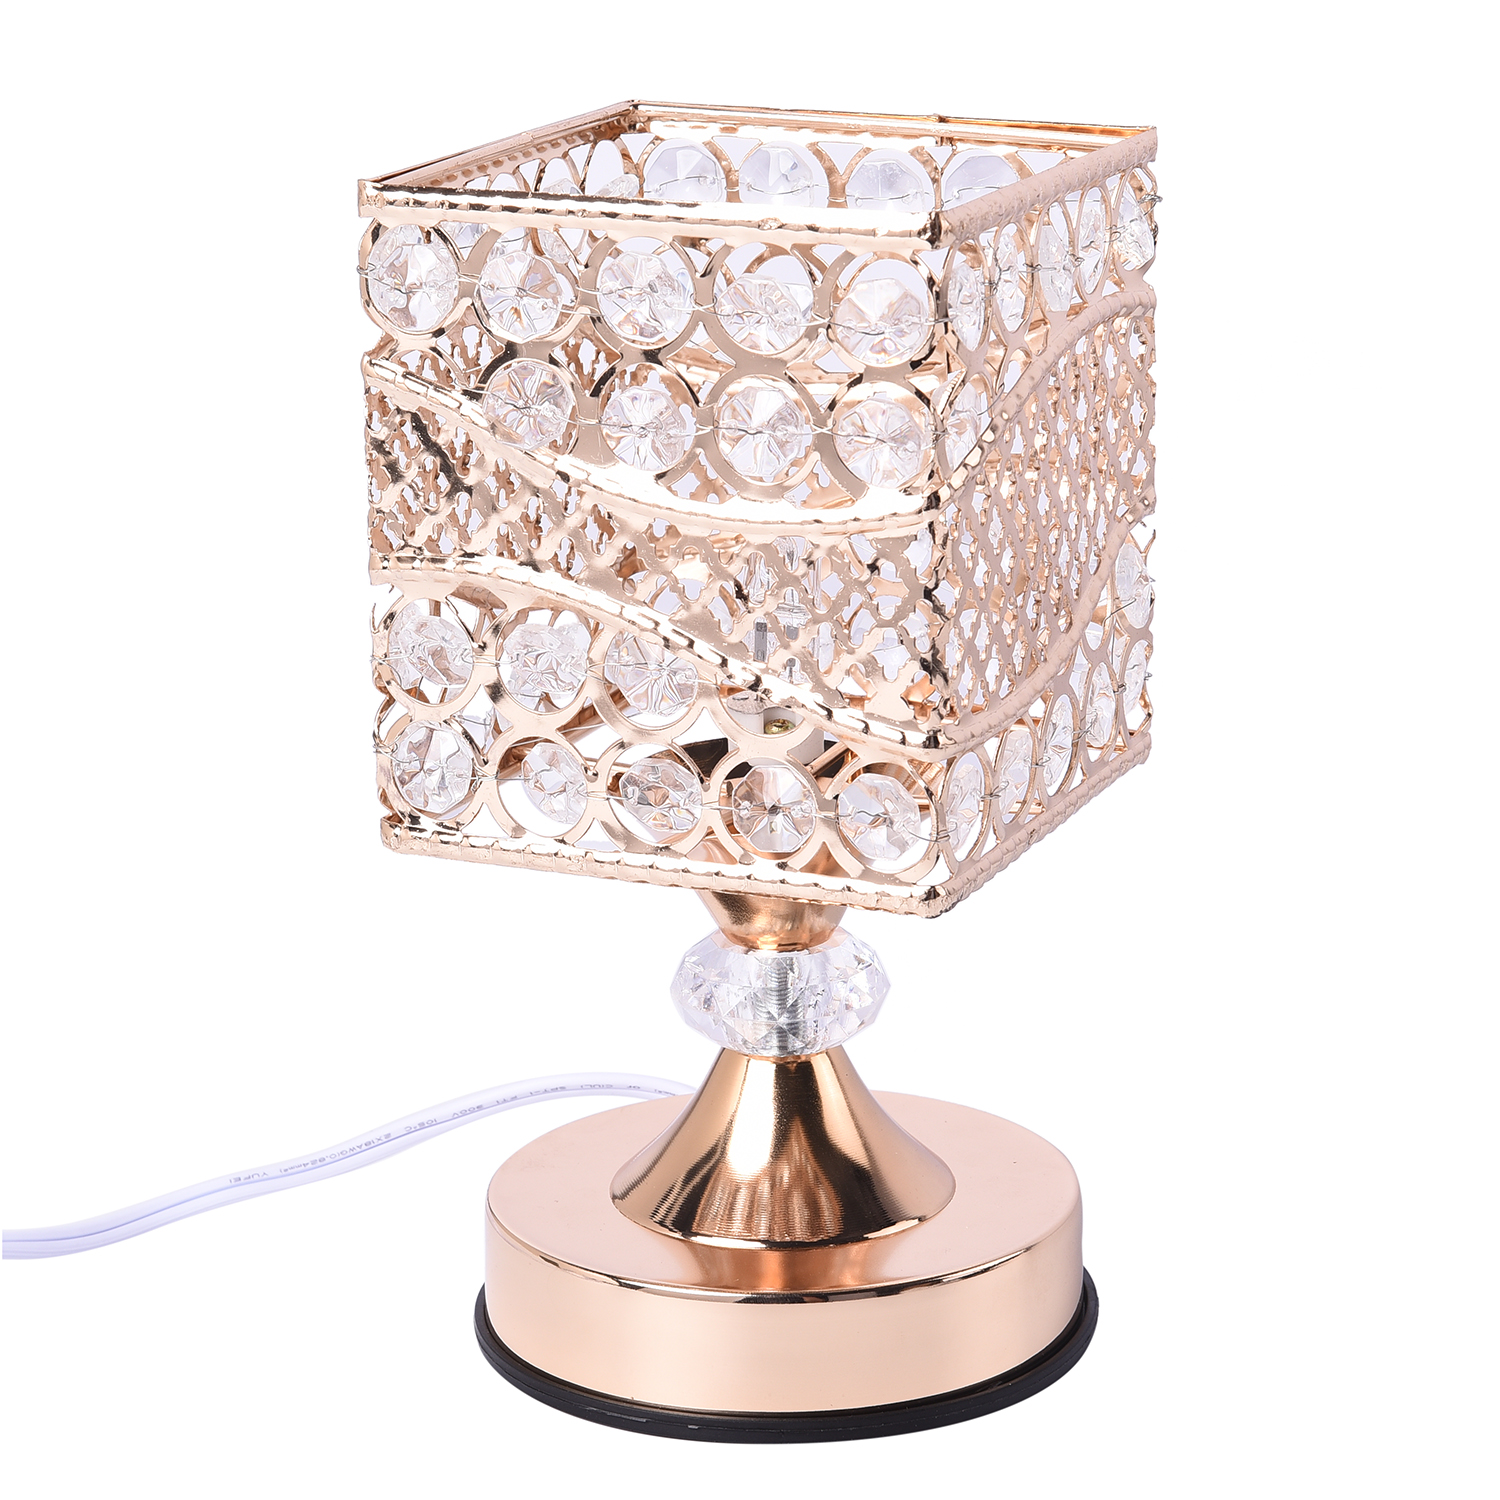 thumbnail 3 - Home Decor Gold Color Iron Design G Table Lamp with UL Plug Bulb G5 Included